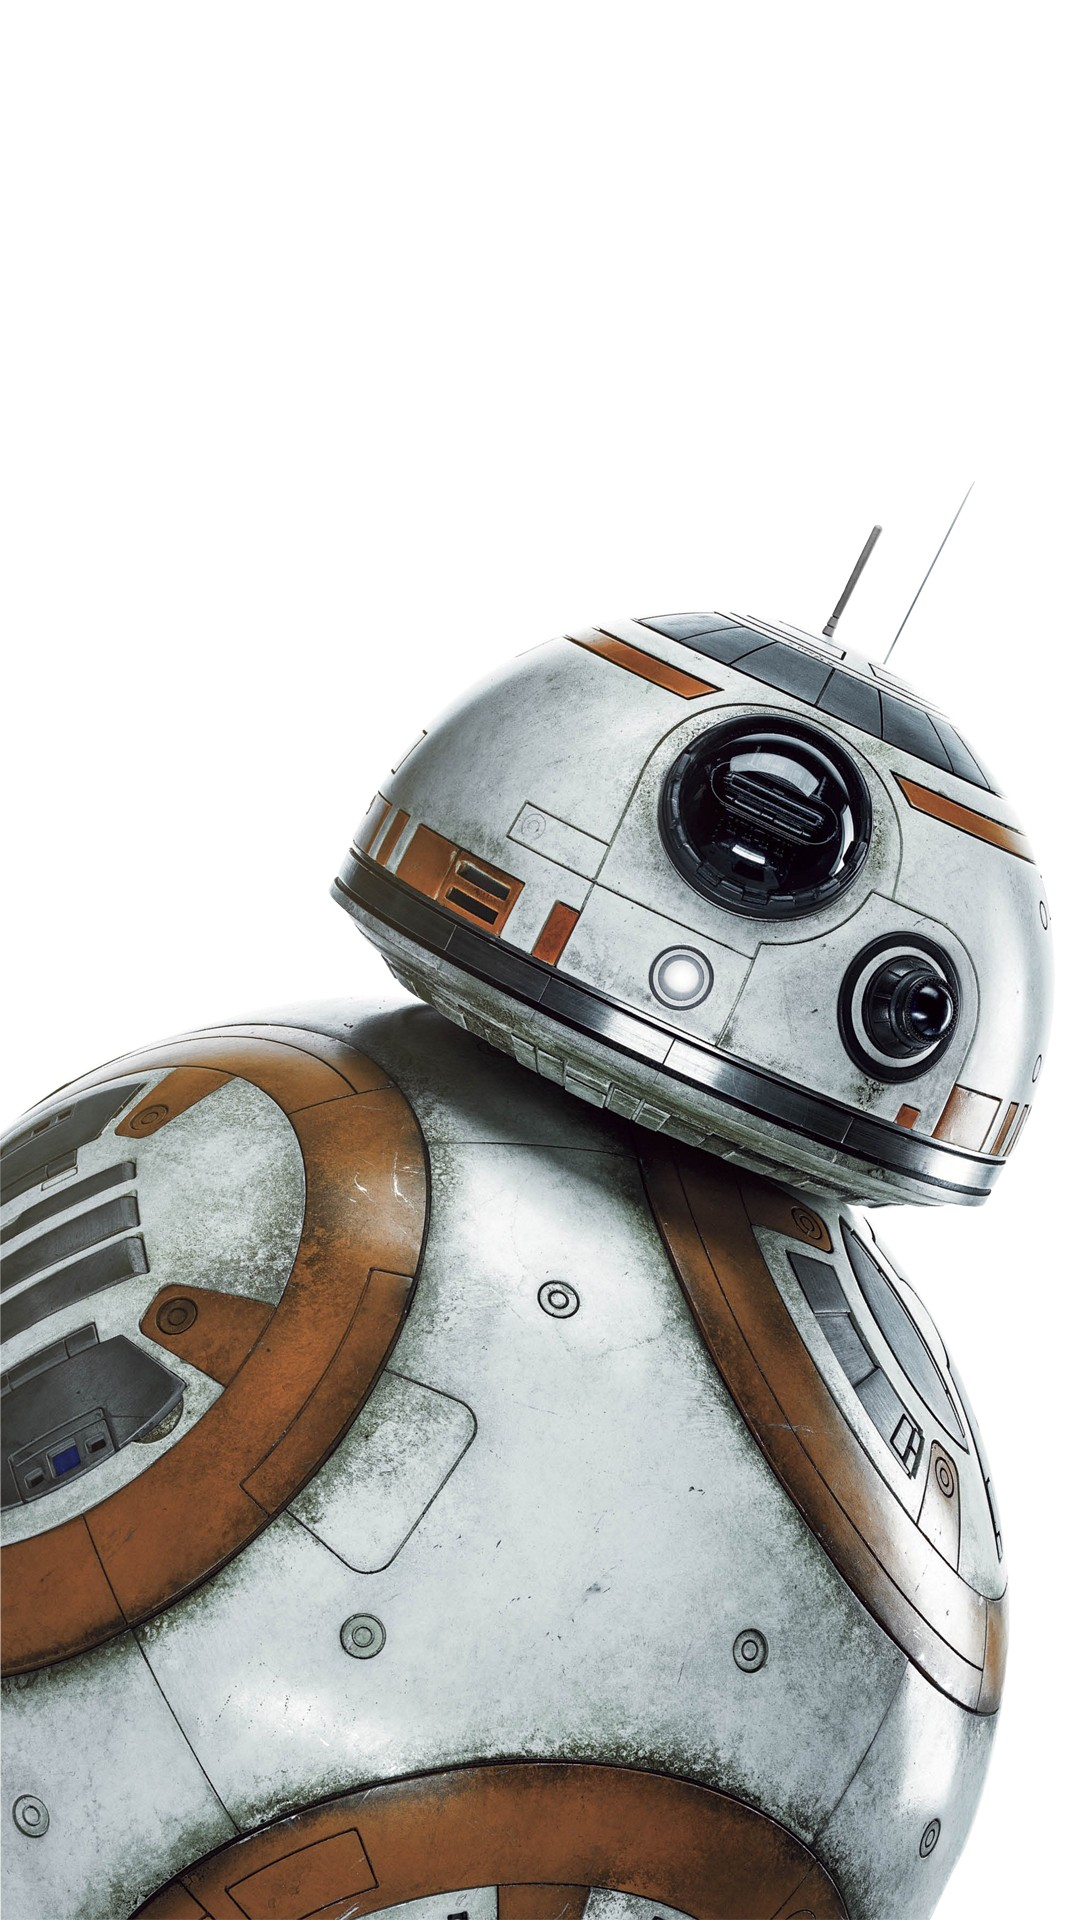 Animated Hd Wallpapers 1080p Free Download Bb 8 Wallpaper 183 ① Download Free Stunning Backgrounds For